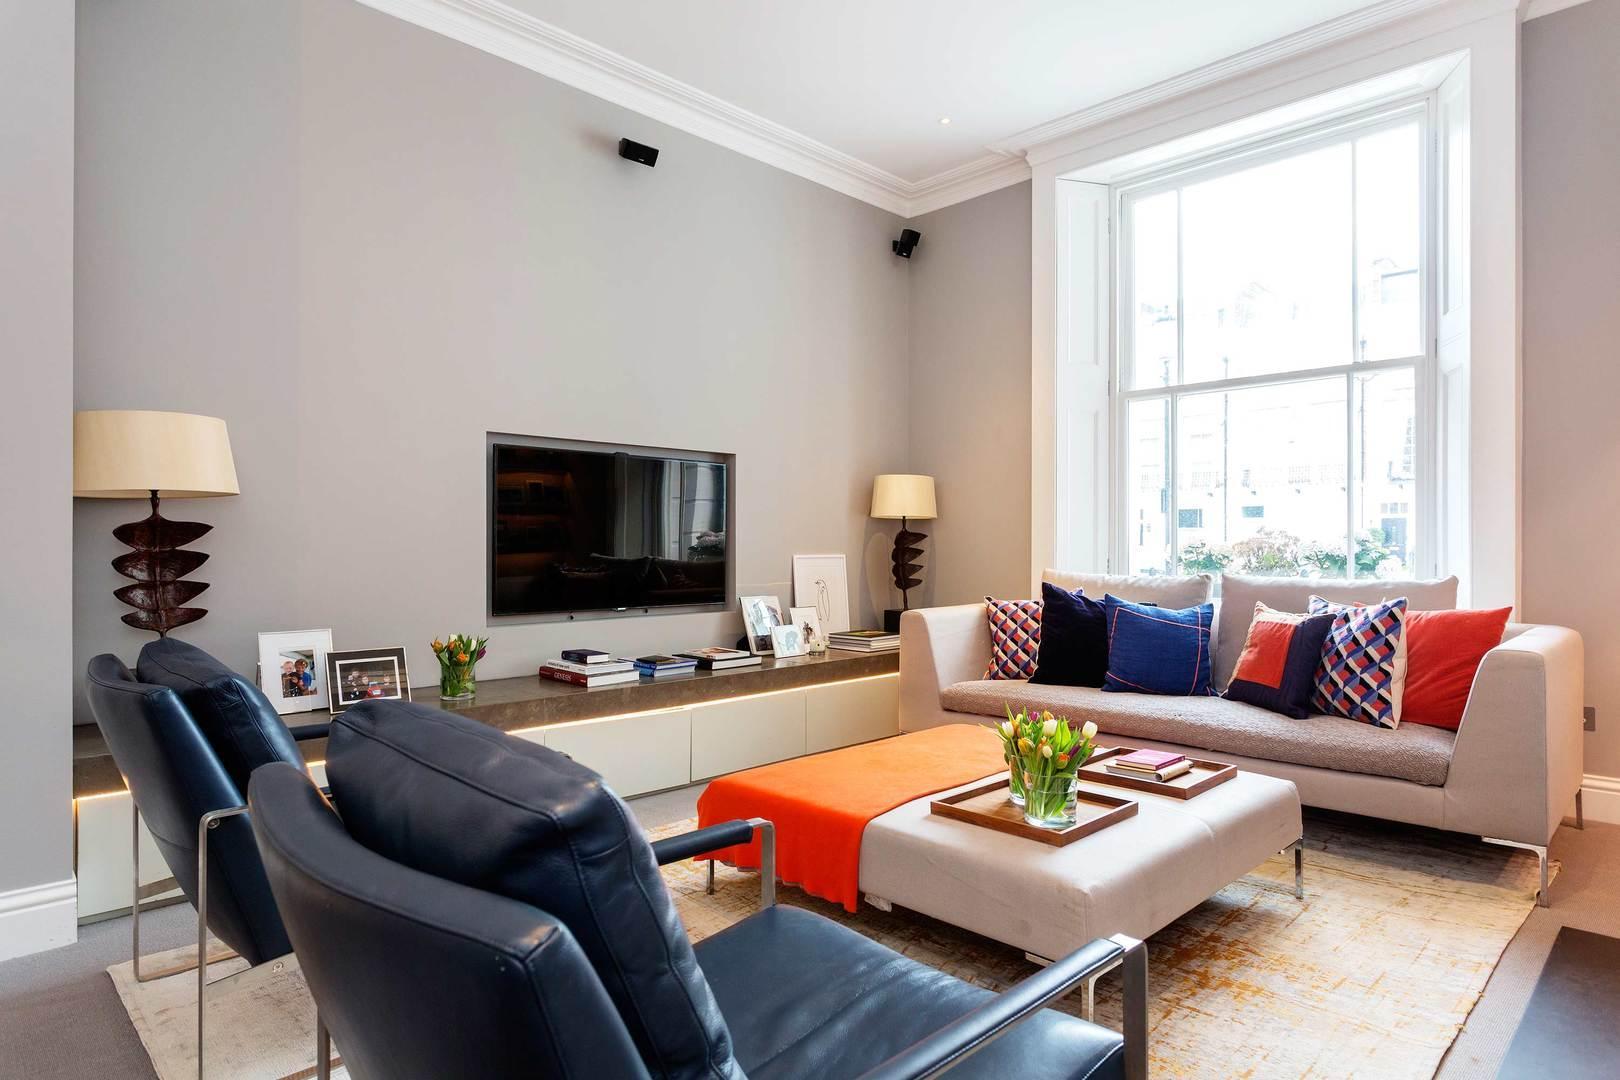 Property Image 1 - Modern Chelsea Square Flat with Private Terrace